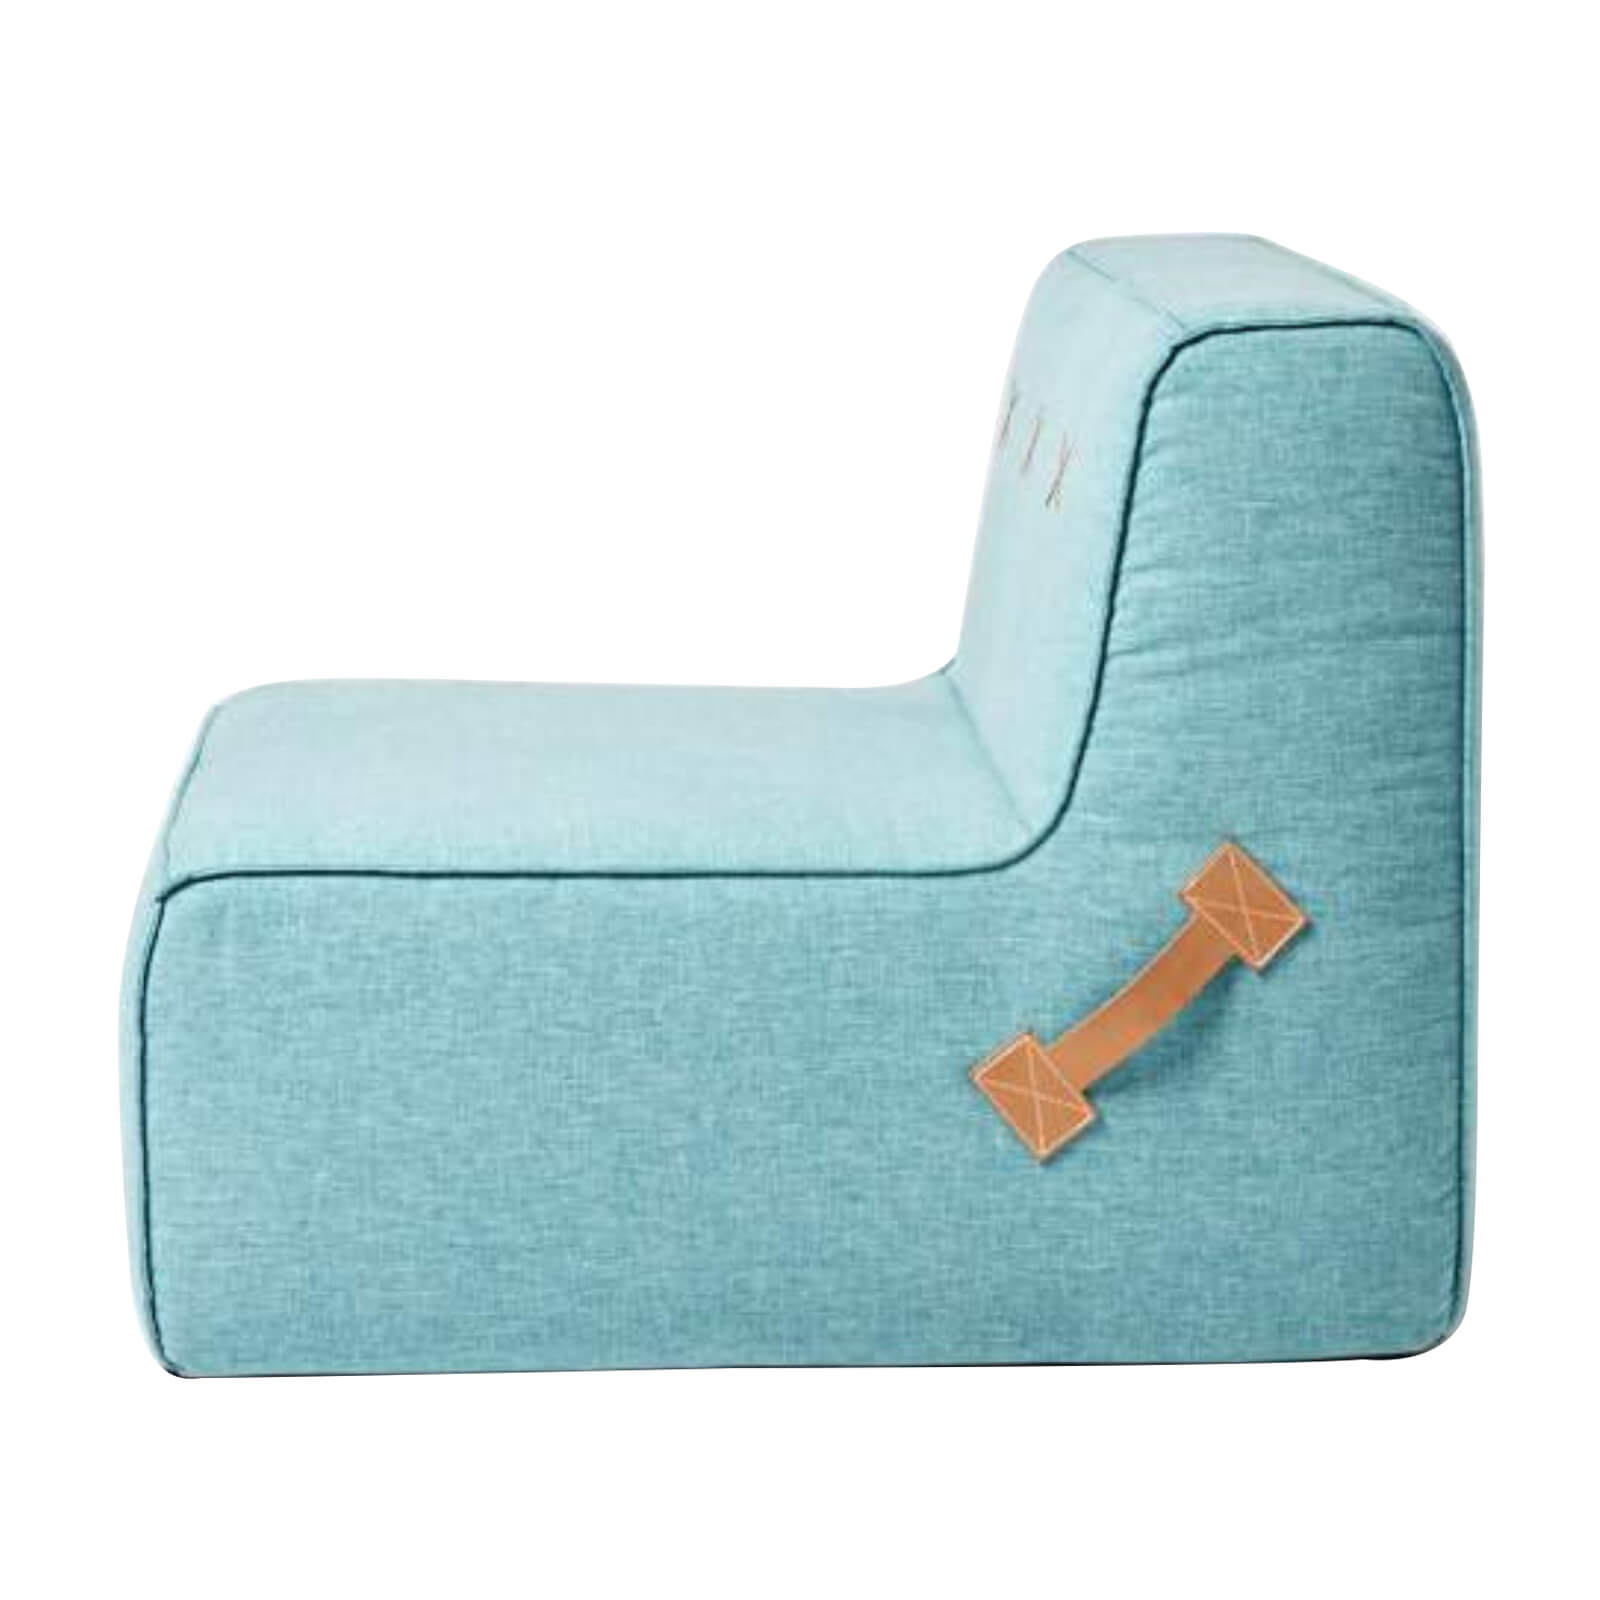 Two Design Lovers Koskela Quadrant Soft Sofa Blue